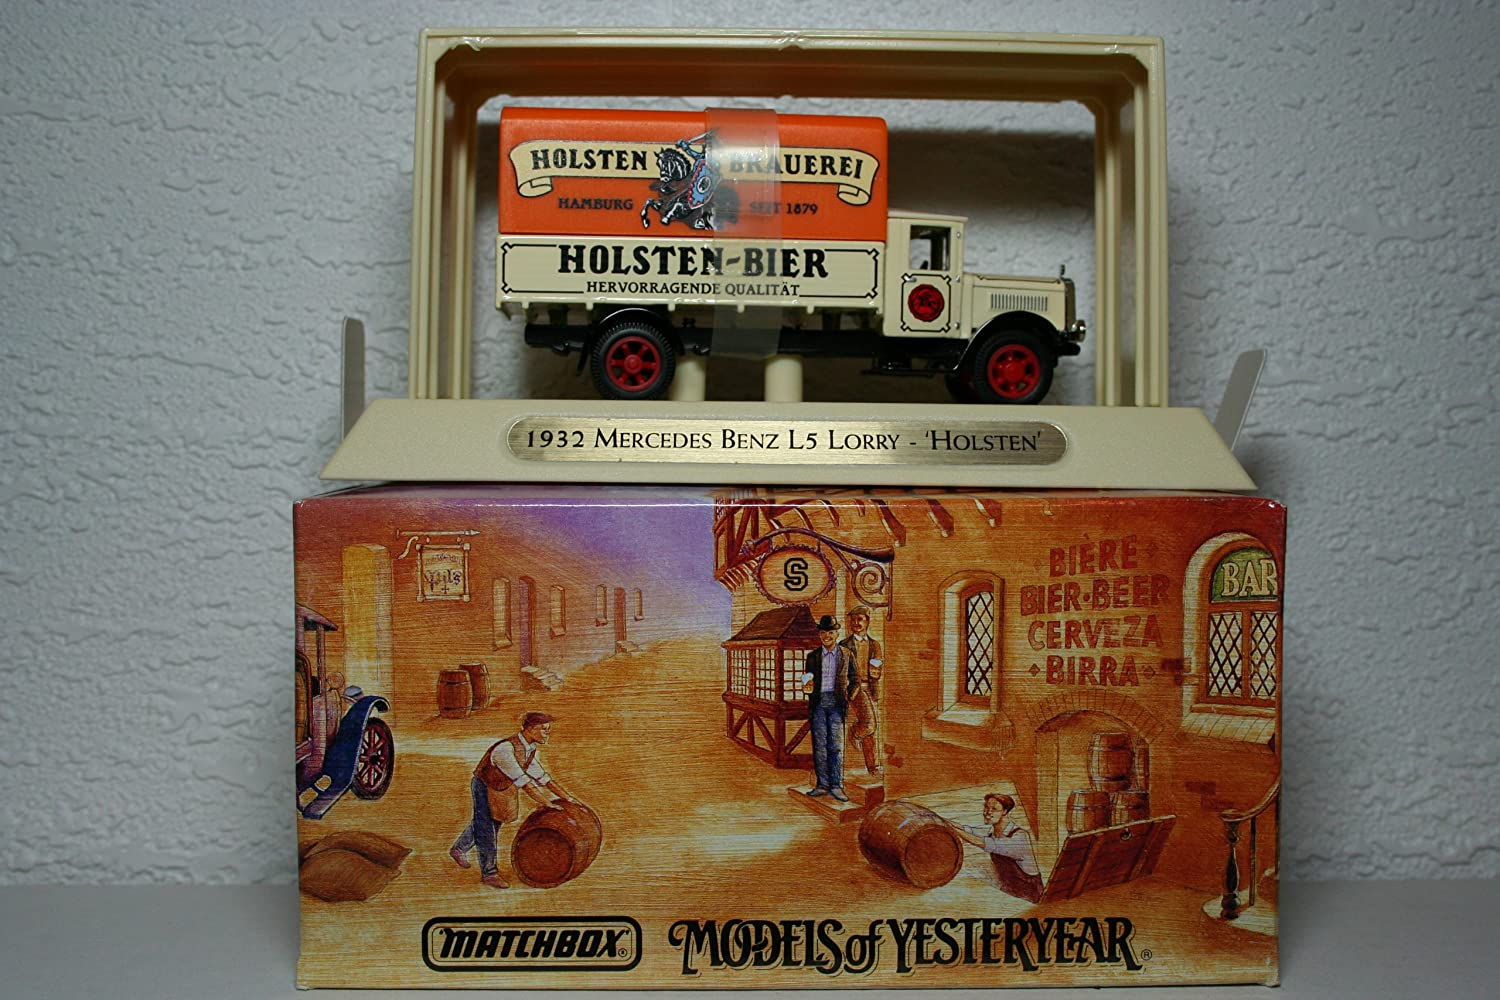 Matchbox Models of Yesteryear Great Beers of the World 1932 Mercedes Benz L5 Lorry Holsten